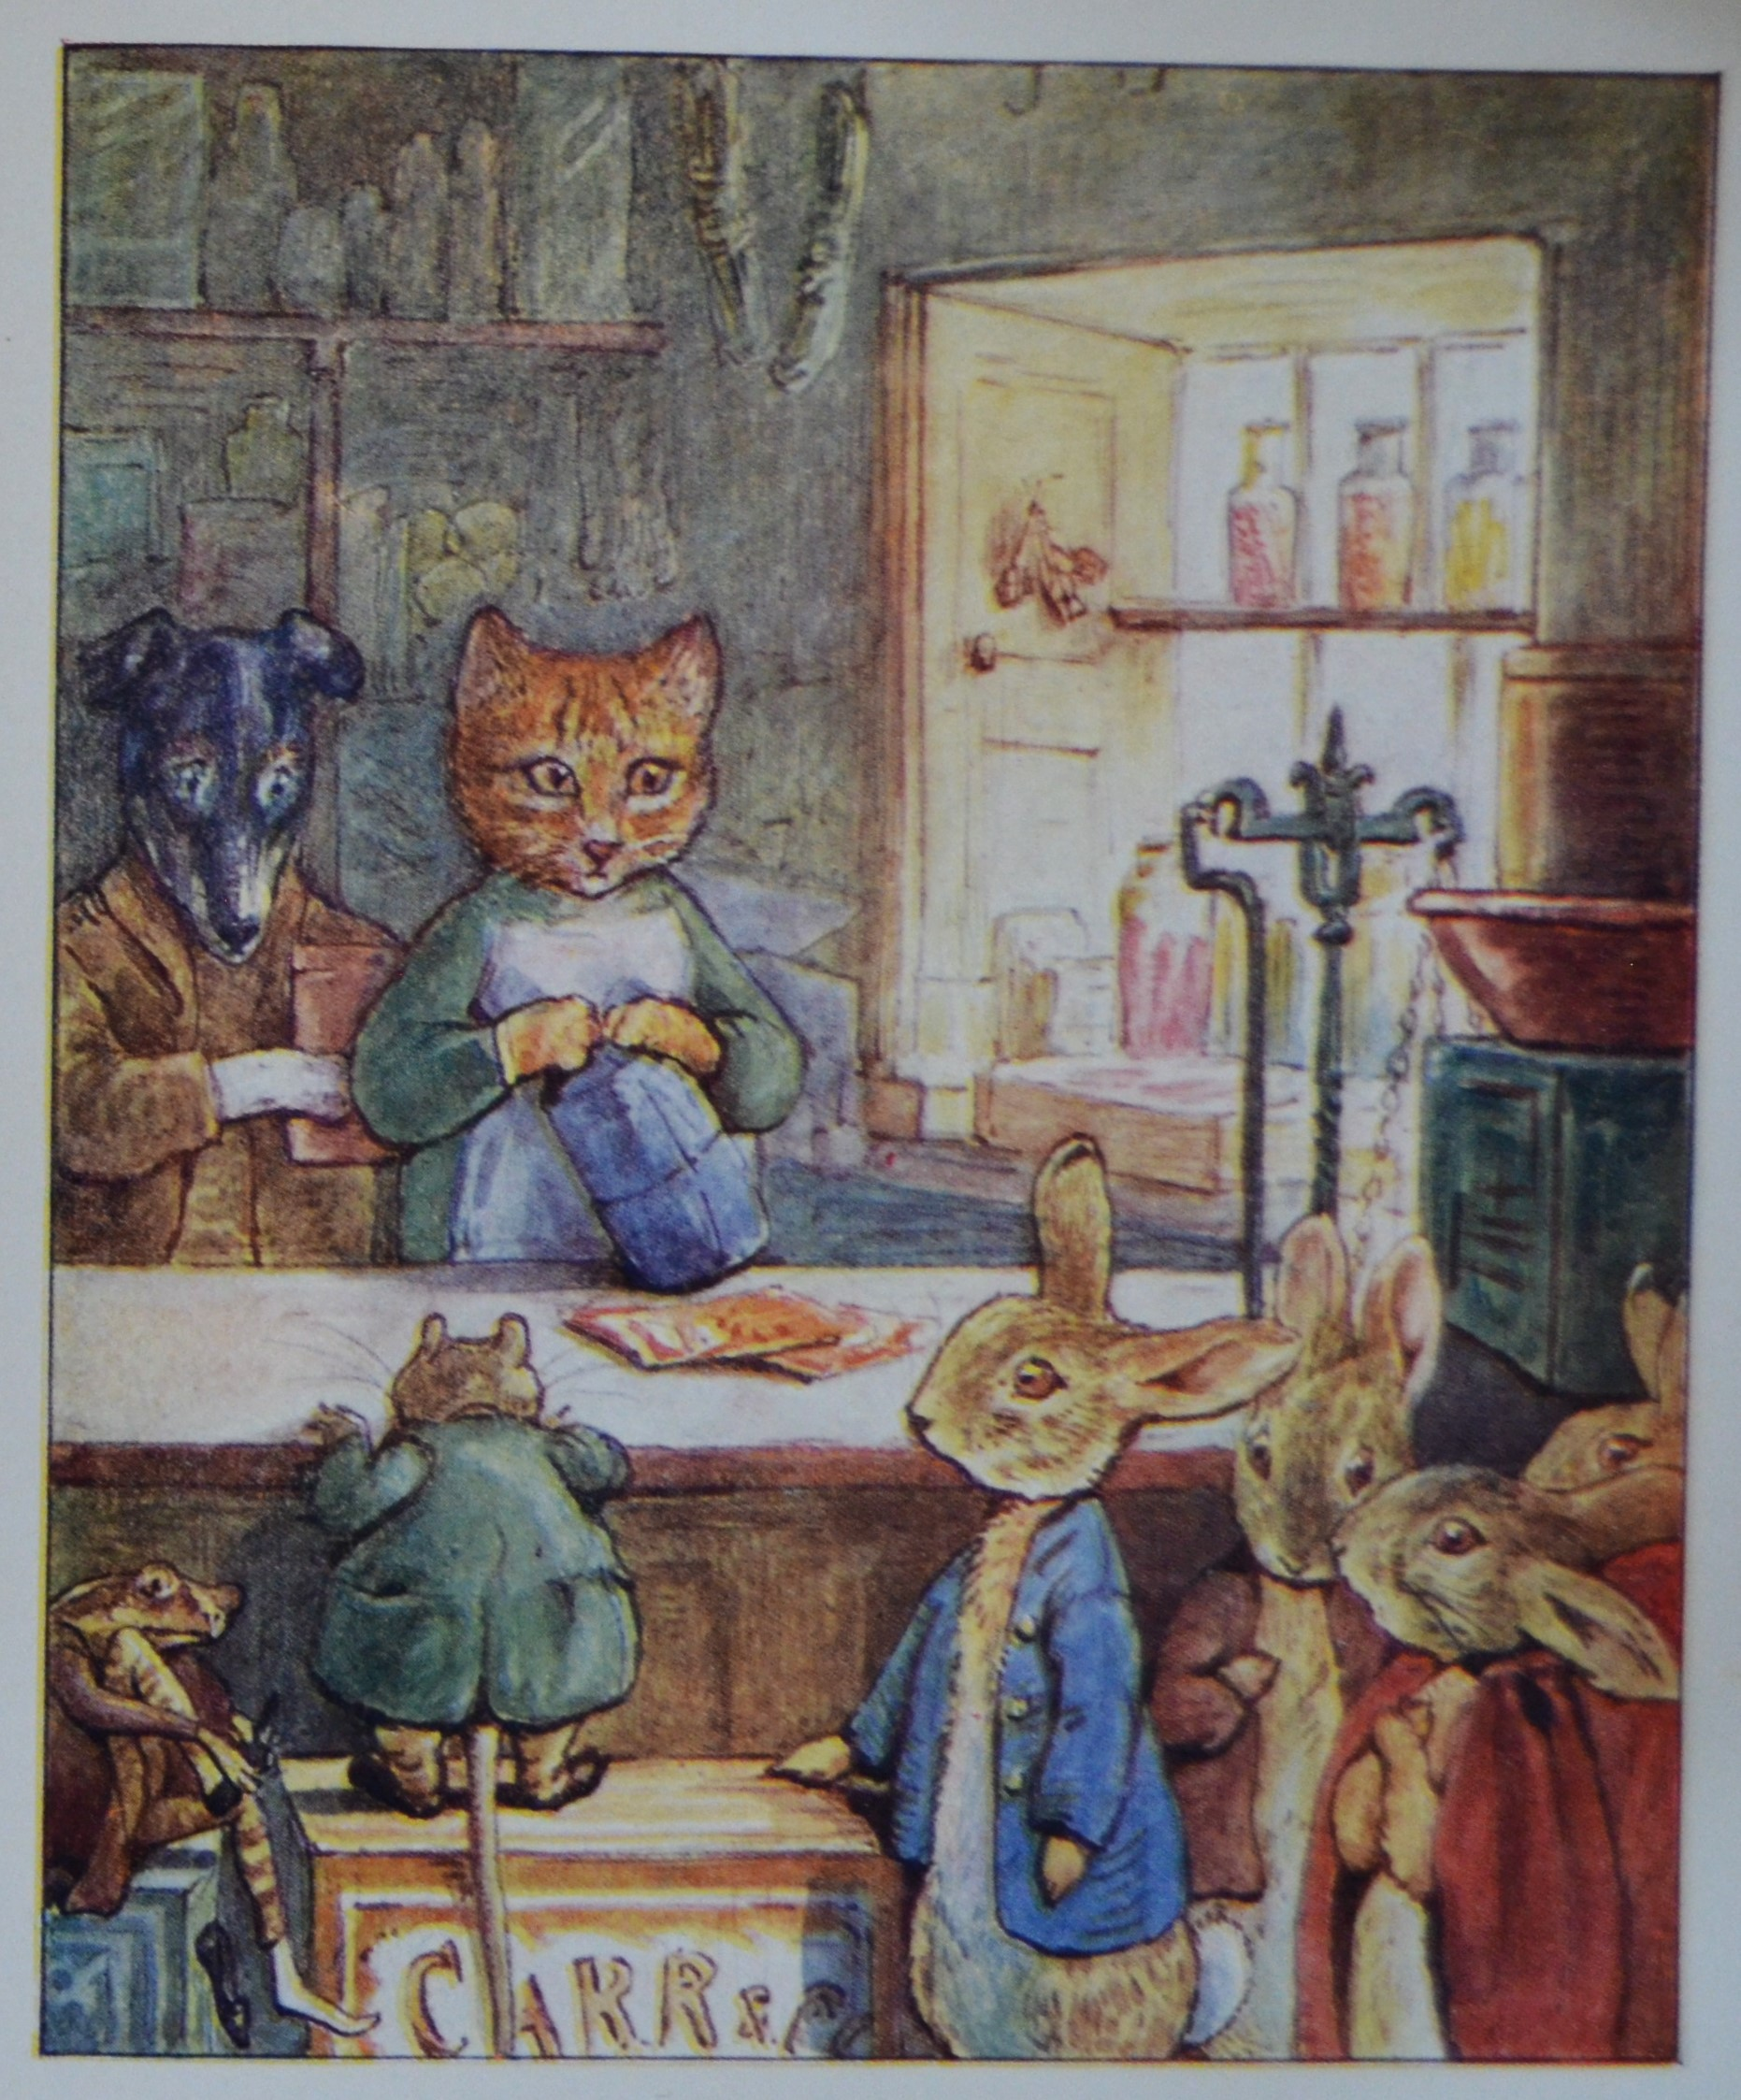 Illustration from 'Ginger & Pickles' showing the animal characters in their shop.